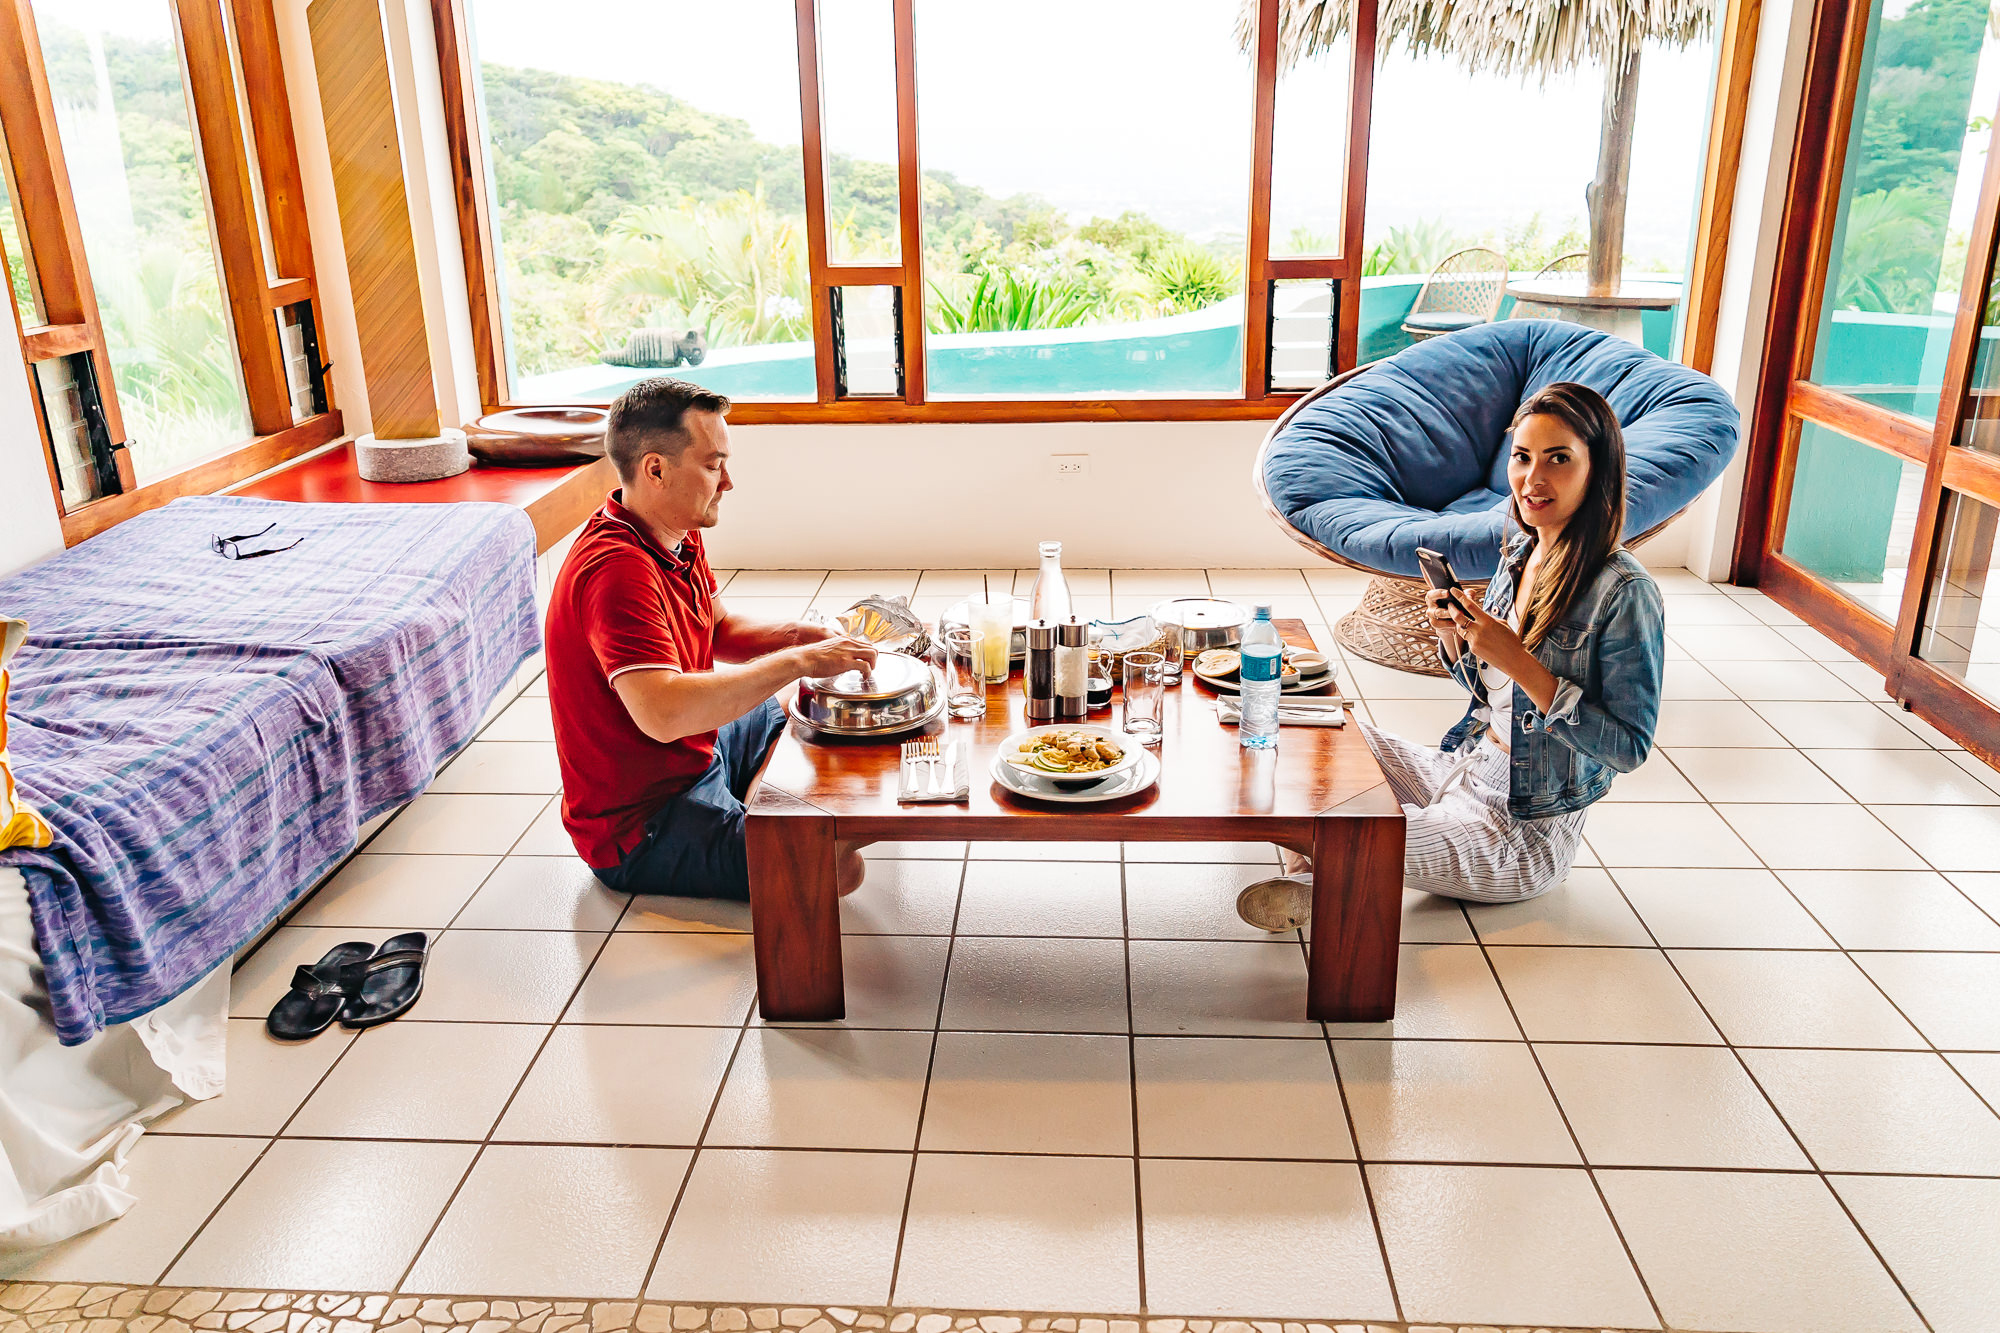 The kind staff delivered our lunch to us in our room at Oversized terrace of our villa at   Xandari Resort and Spa